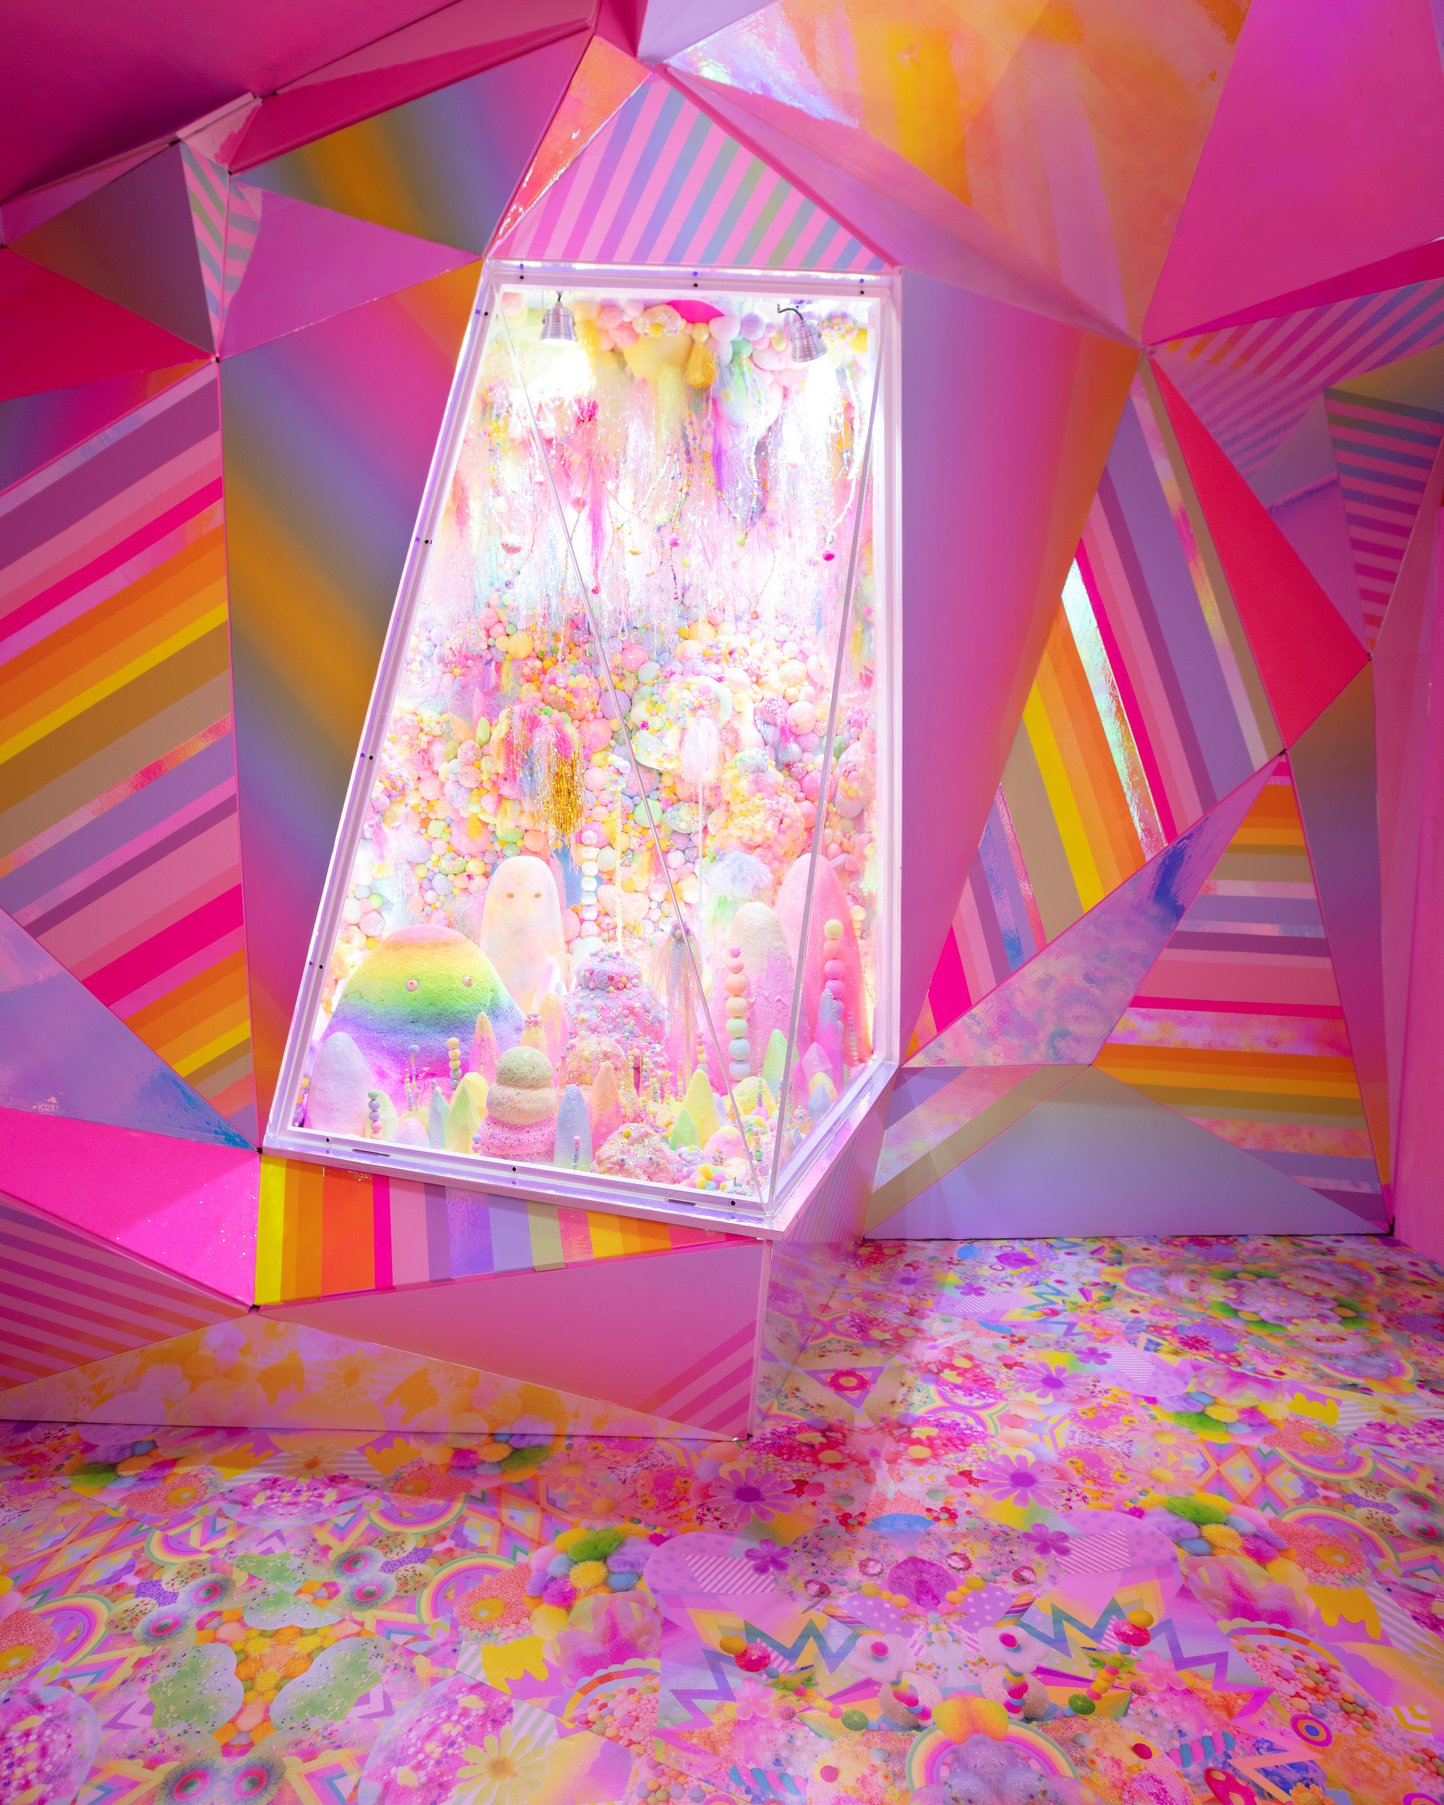 bright pink room at Meow Wolf in Santa Fe, NM